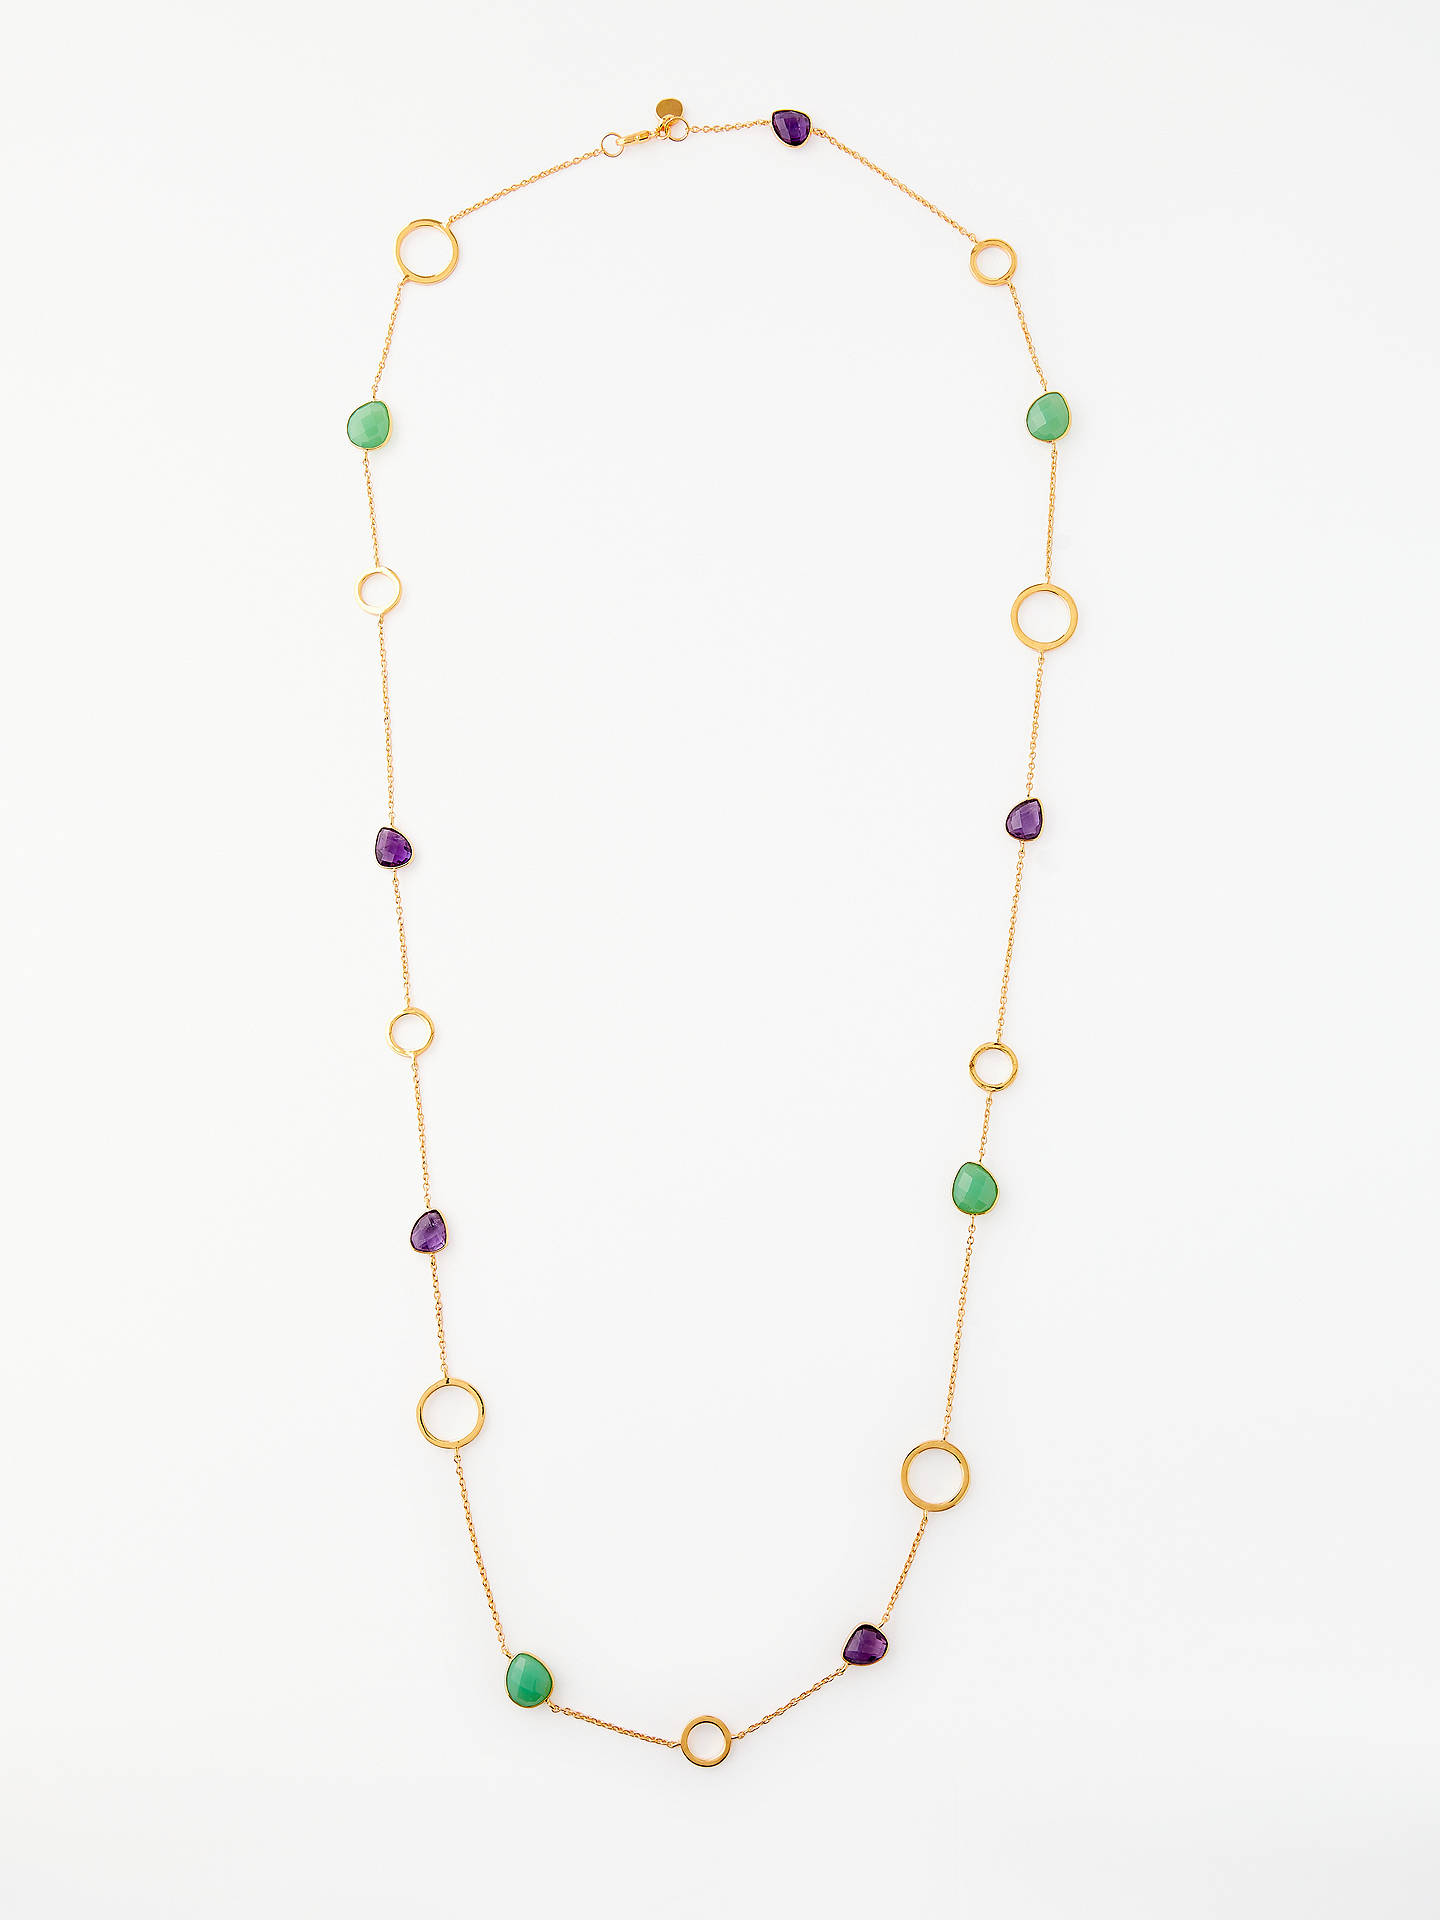 BuyJohn Lewis Semi-Precious Stone Long Chain Necklace, Gold/Chrysoprase Amethyst Online at johnlewis.com